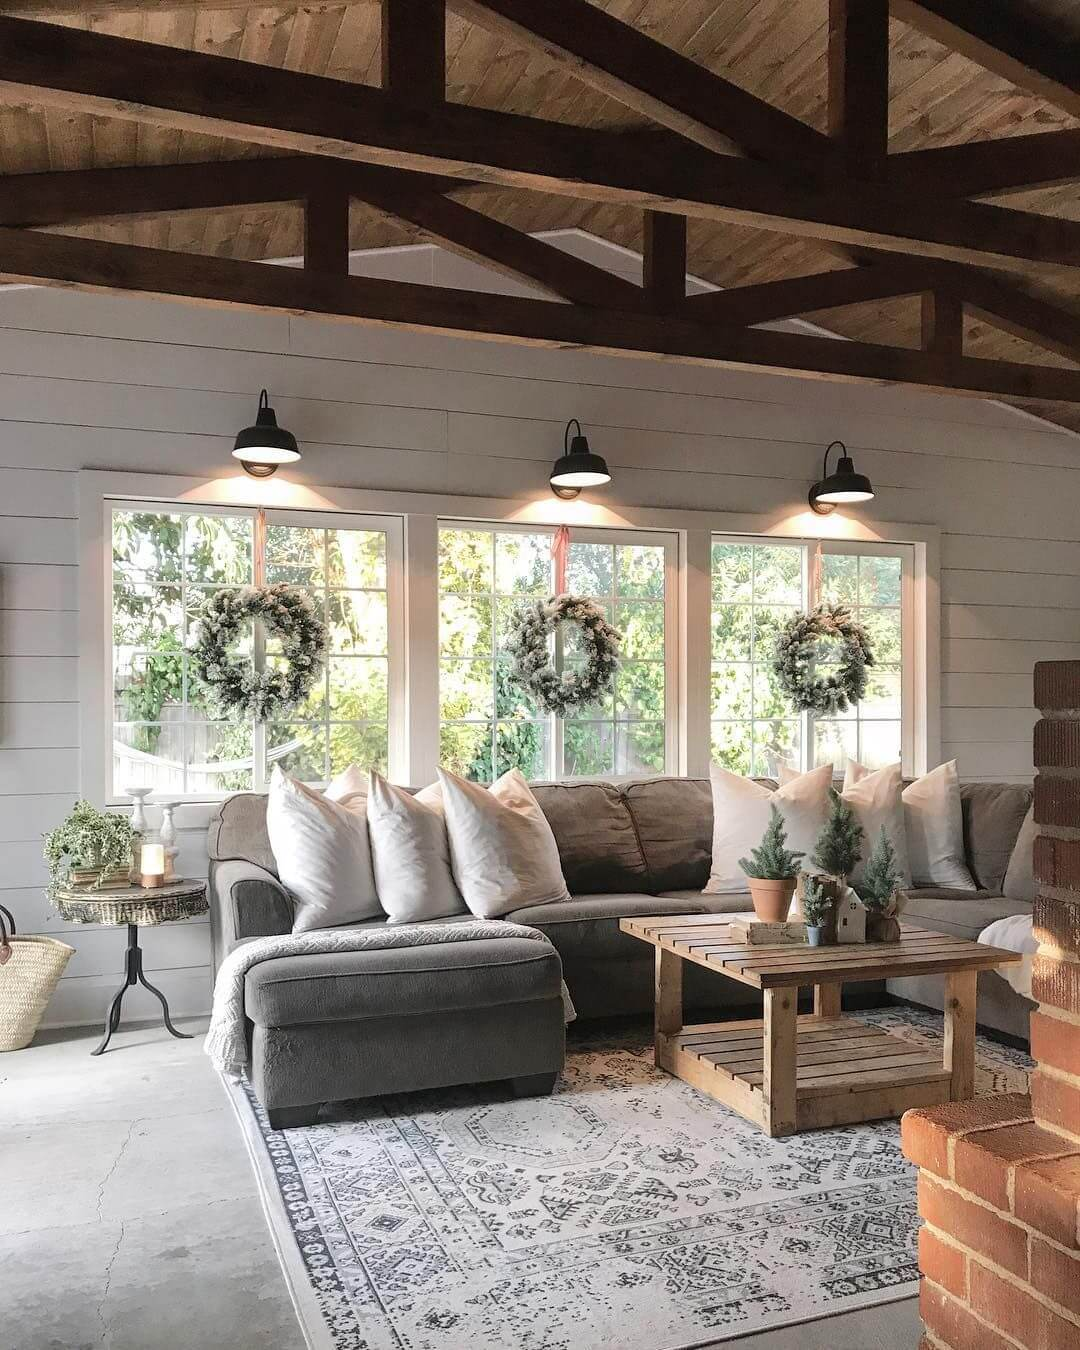 35 Best Farmhouse Interior Ideas And Designs For 2021